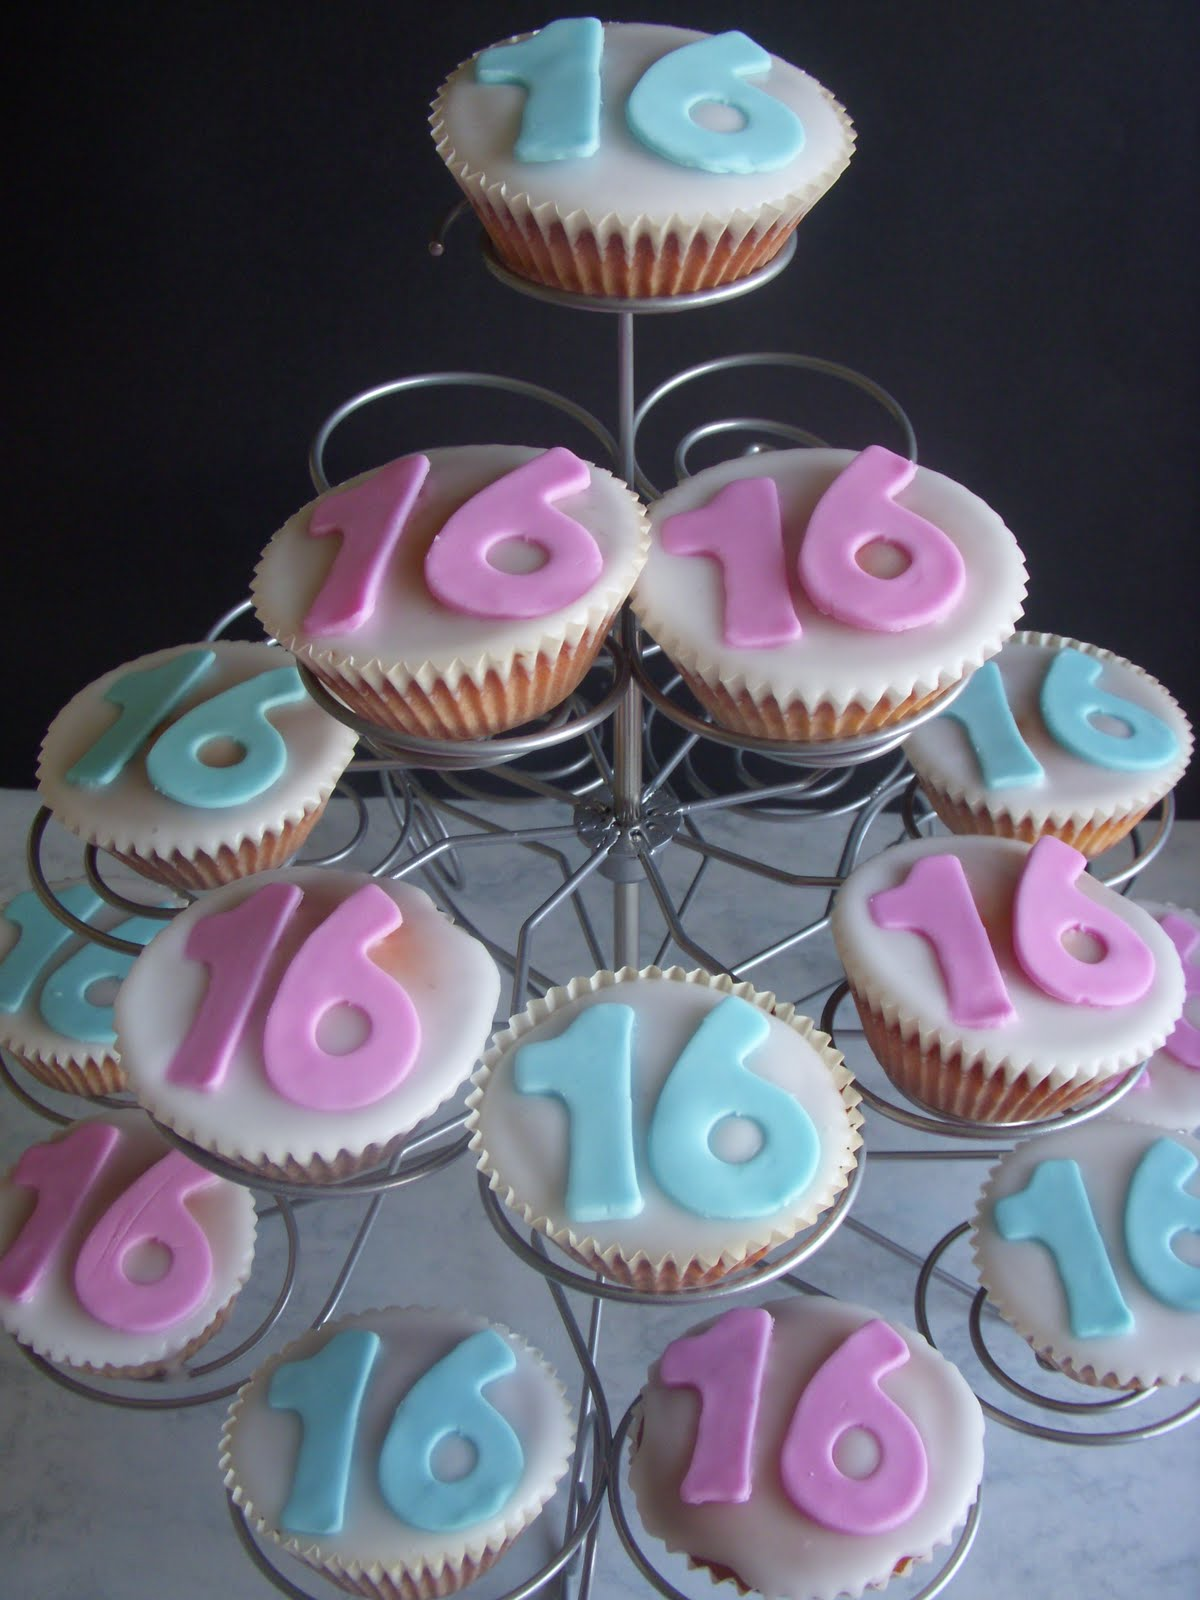 Cakes By Fay 16th Birthday Cupcakes